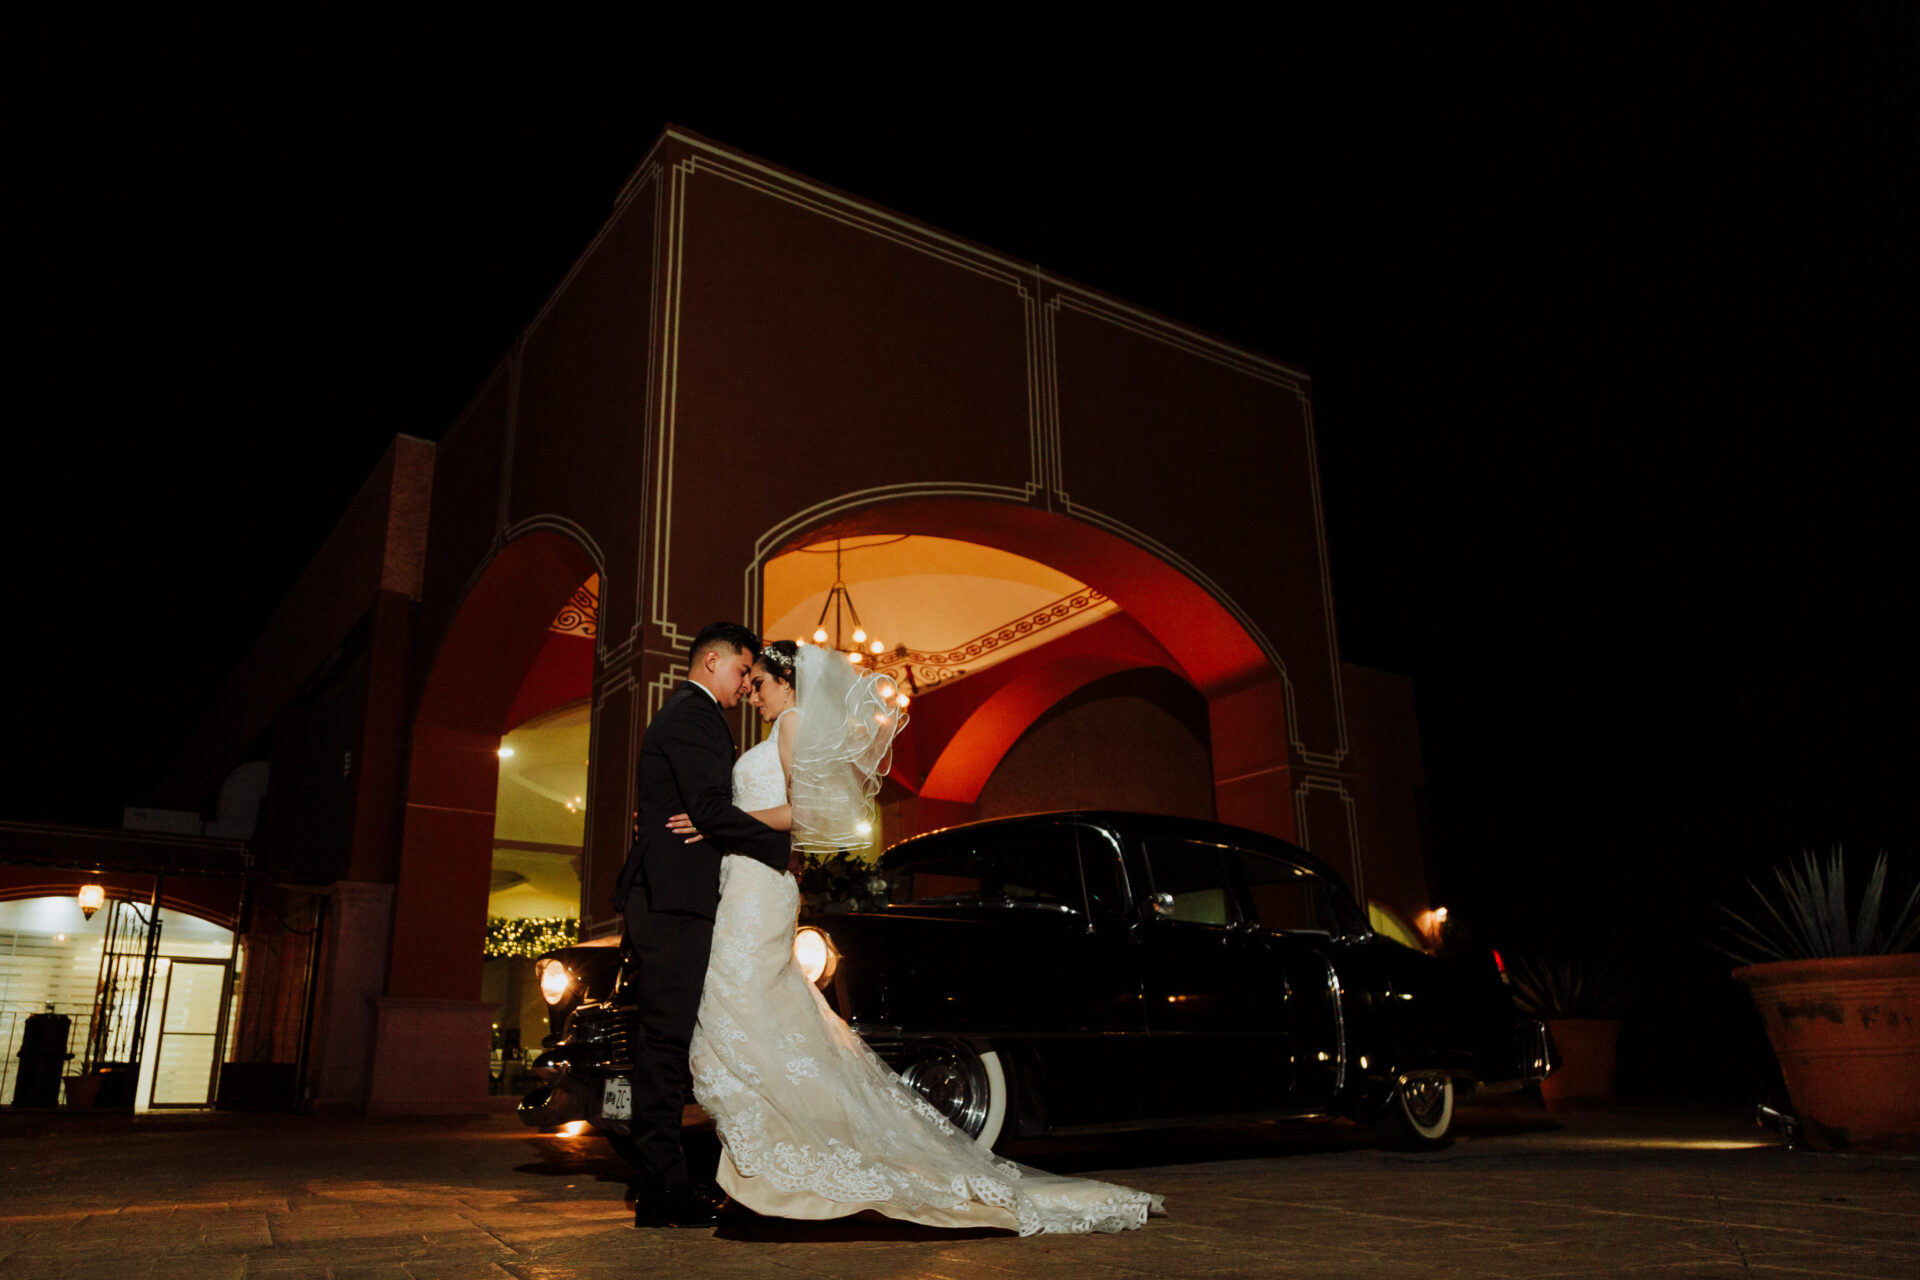 javier_noriega_fotografo_Boda_san_ramon_zacatecas_wedding_photographer16